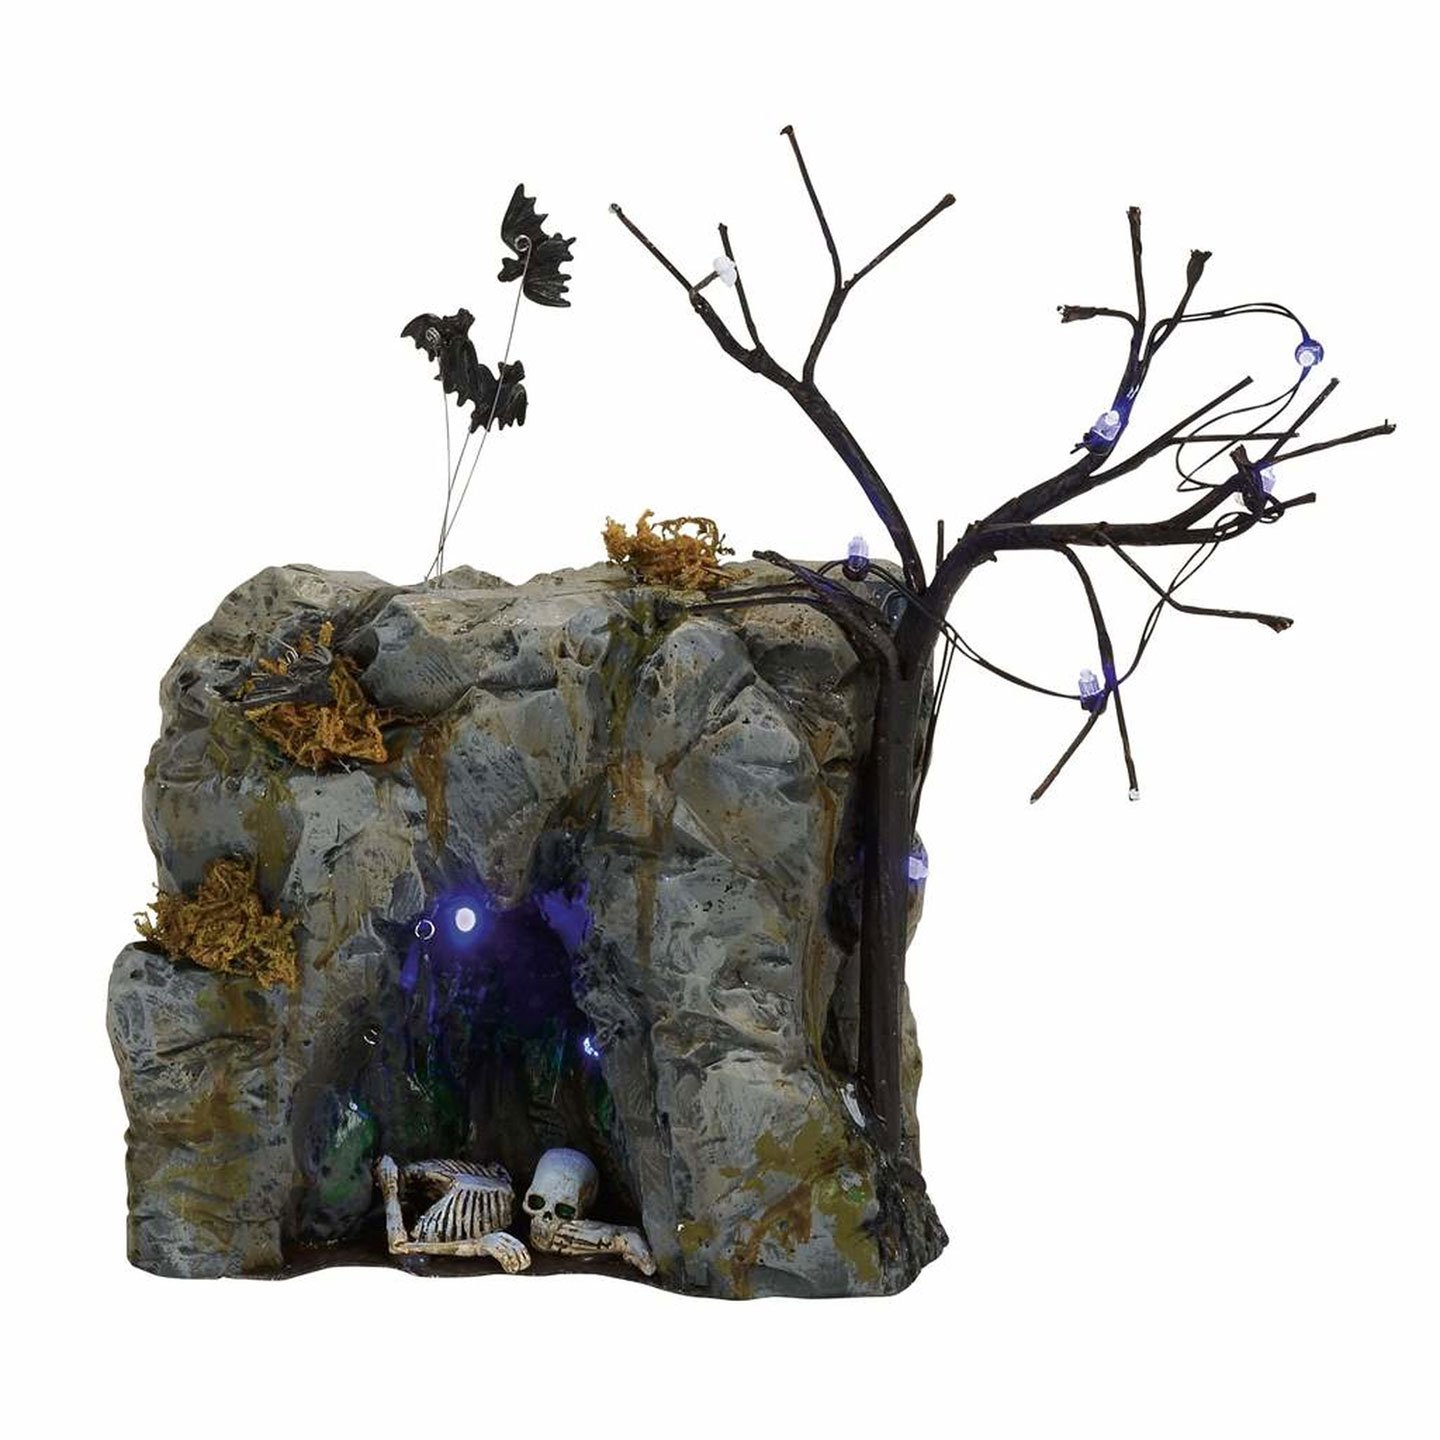 Department 56 Accessories for Villages Halloween Black Light Bat Cave Accessory Figurine